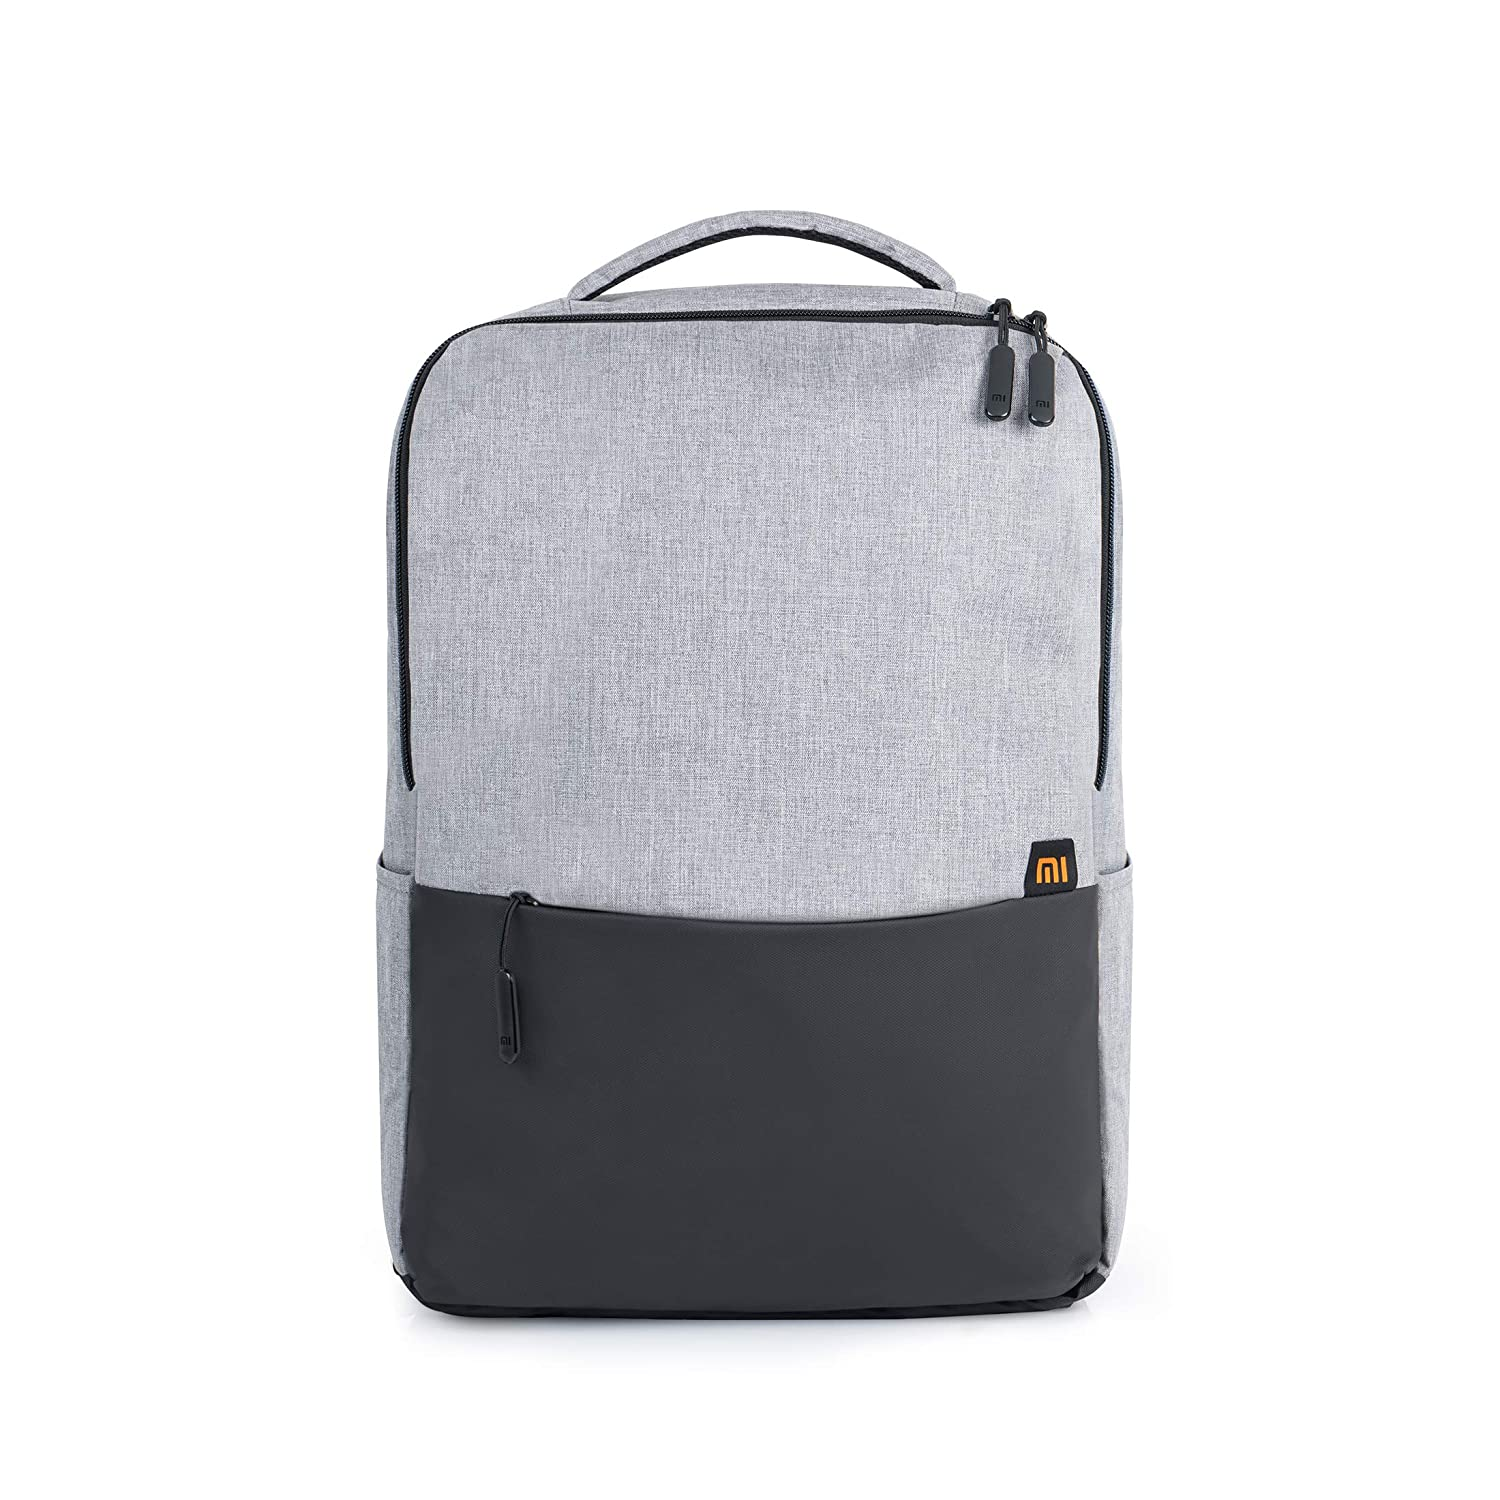 Mi Business Casual 21L Water Resistant Laptop Backpack (Light Grey)